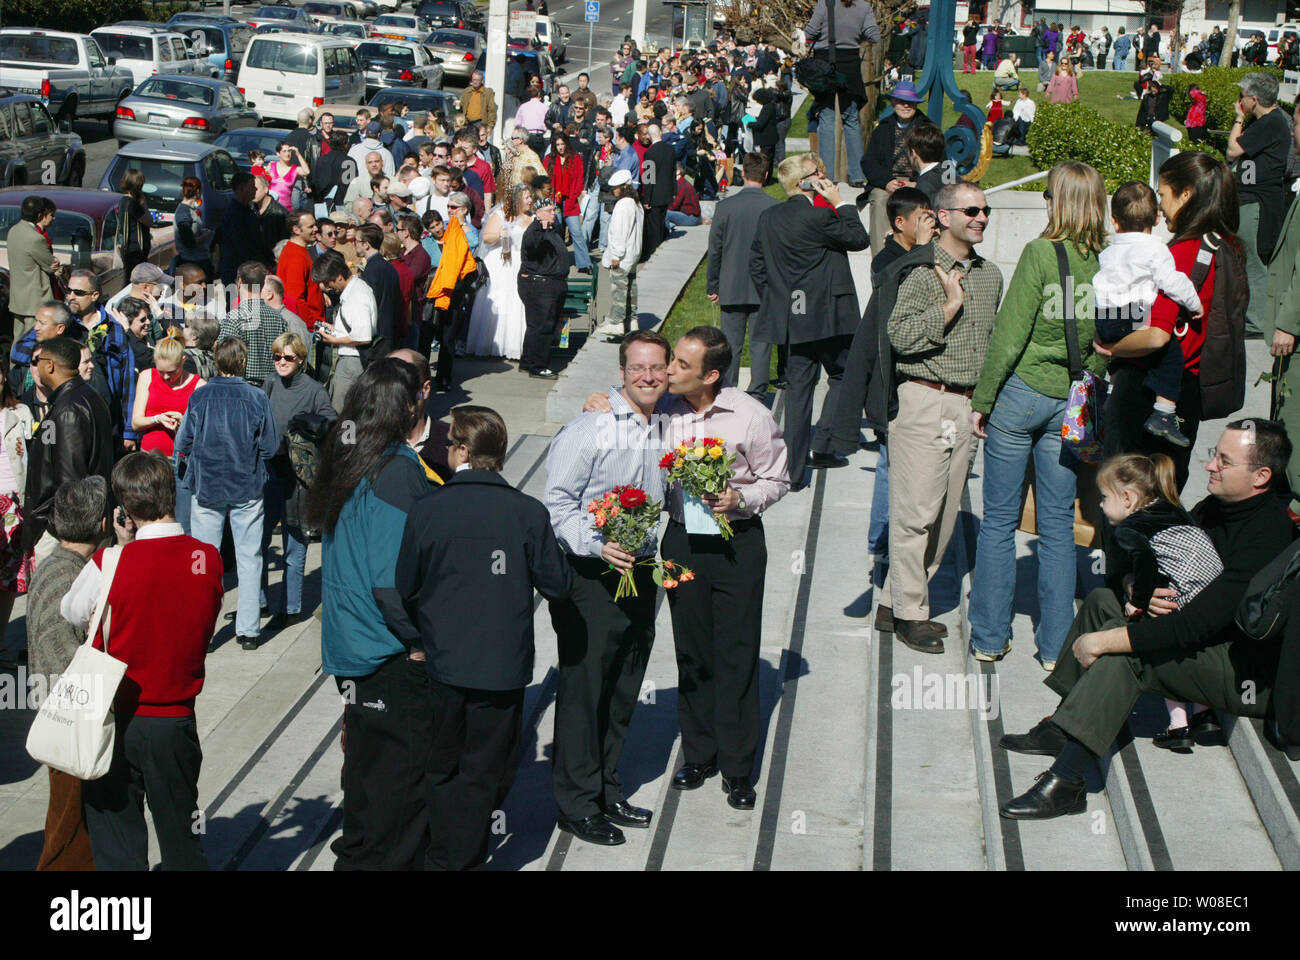 Flowers, a kiss, and a long wait in line to be married at City Hall marks one couple's Valentines Day ,  February 14, 2004  in San Francisco.  (UPI Photo/Terry Schmitt) - Stock Image